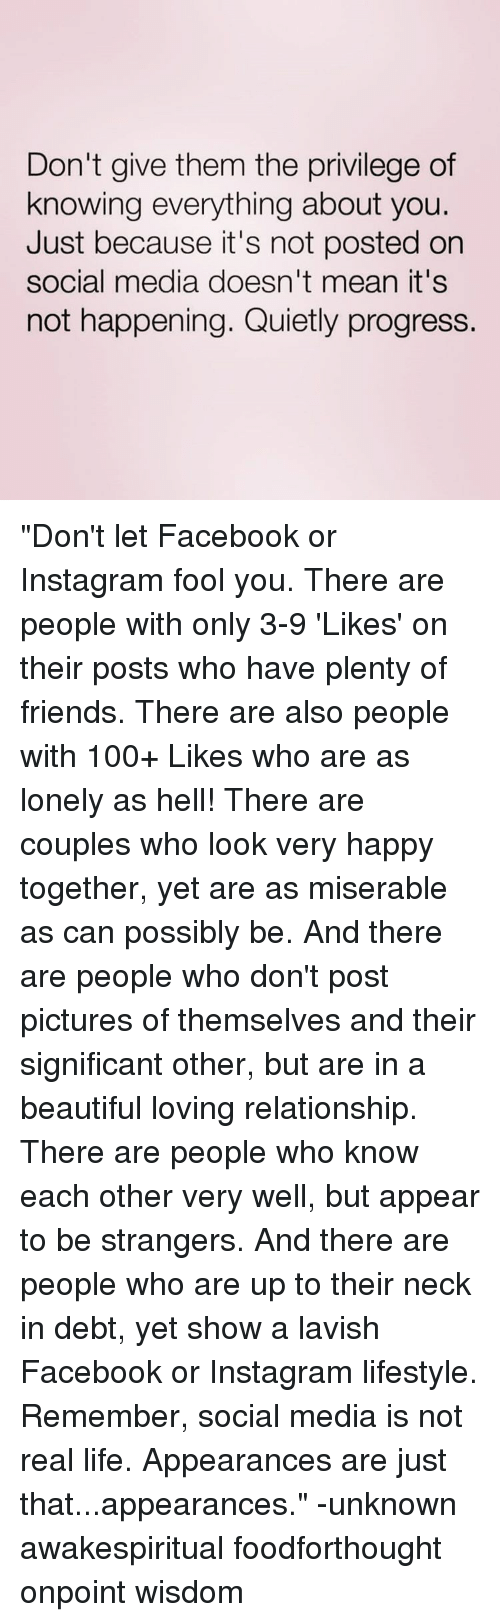 "Memes, Relationships, and Social Media: Don't give them the privilege of  knowing everything about you.  Just because it's not posted on  social media doesn't mean it's  not happening. Quietly progress. ""Don't let Facebook or Instagram fool you. There are people with only 3-9 'Likes' on their posts who have plenty of friends. There are also people with 100+ Likes who are as lonely as hell! There are couples who look very happy together, yet are as miserable as can possibly be. And there are people who don't post pictures of themselves and their significant other, but are in a beautiful loving relationship. There are people who know each other very well, but appear to be strangers. And there are people who are up to their neck in debt, yet show a lavish Facebook or Instagram lifestyle. Remember, social media is not real life. Appearances are just that...appearances."" -unknown awakespiritual foodforthought onpoint wisdom"